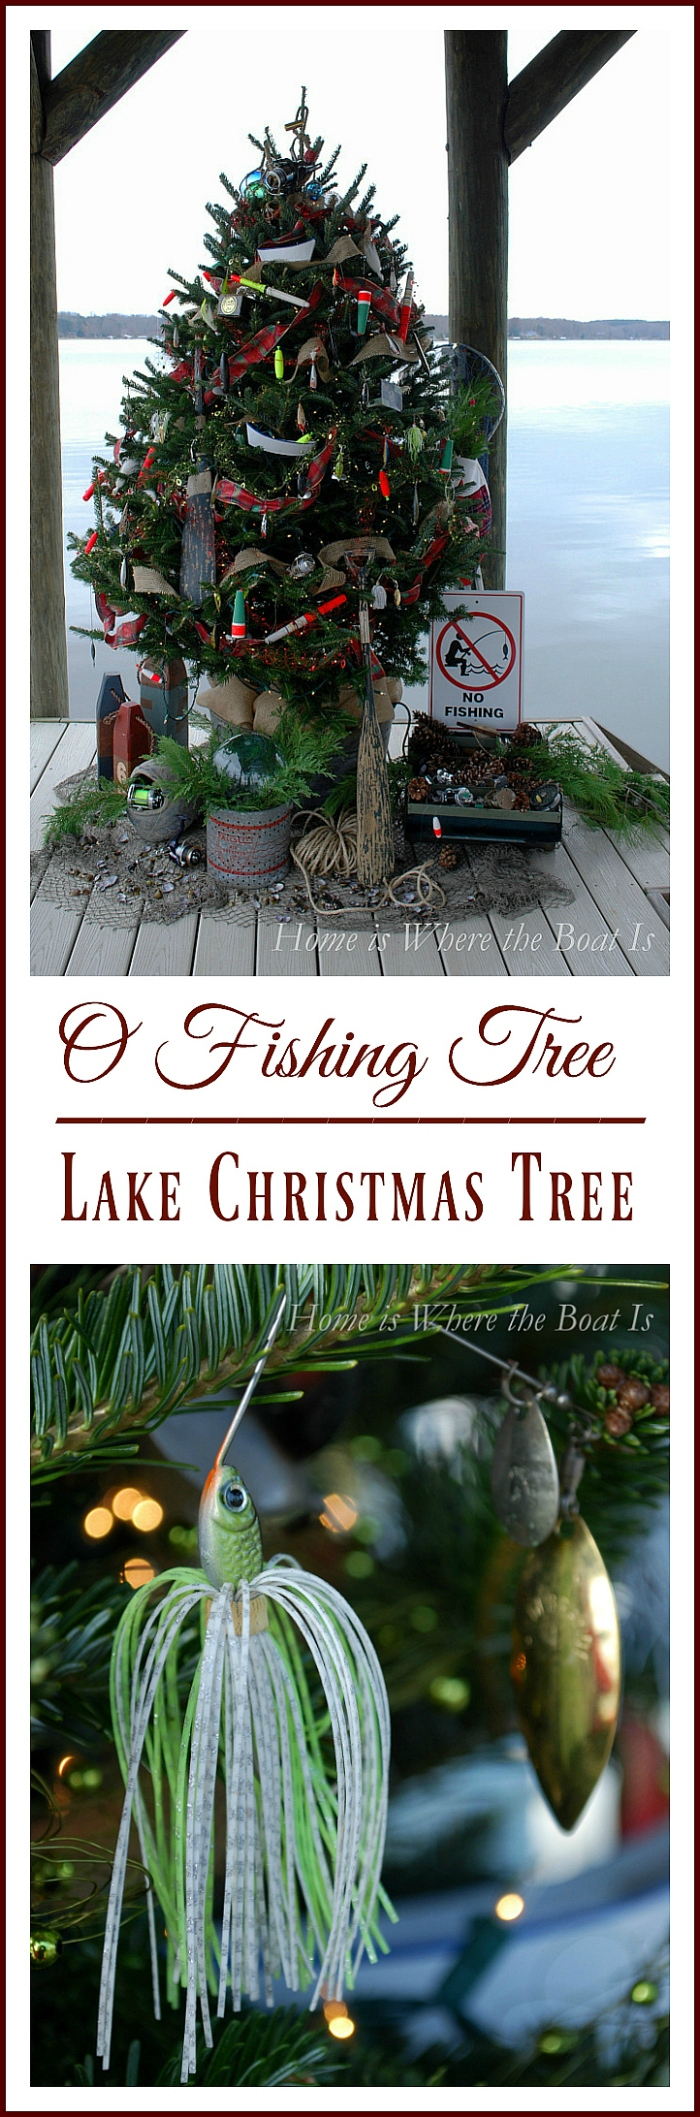 o-fishing-tree